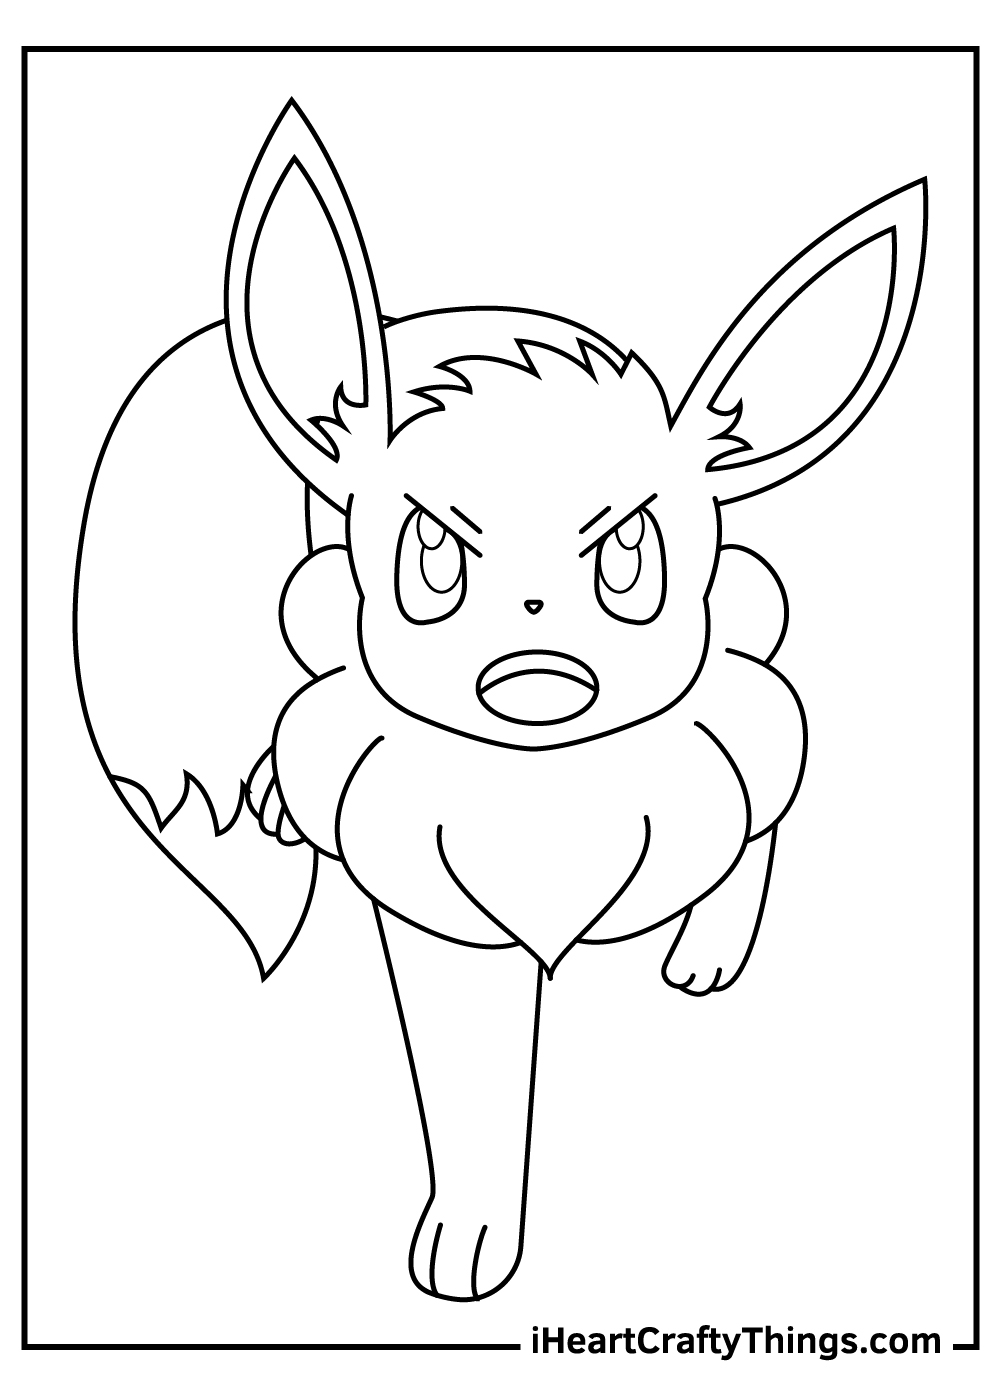 cute eevee pokemon coloring pages free to download